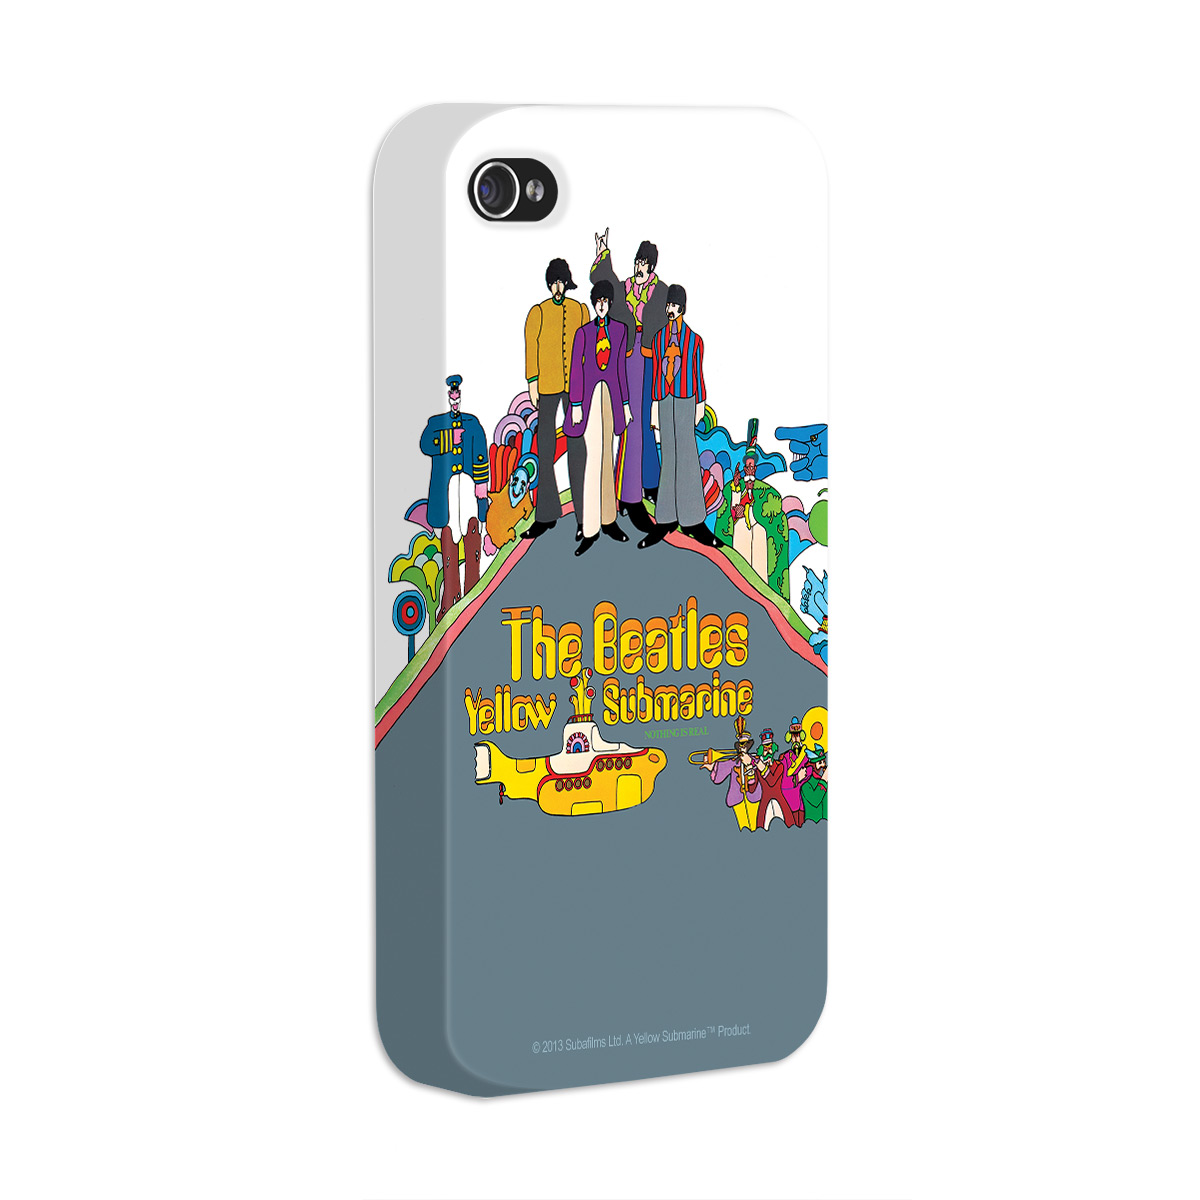 Capa de iPhone 4/4S The Beatles Yellow Submarine Nothing Is Real